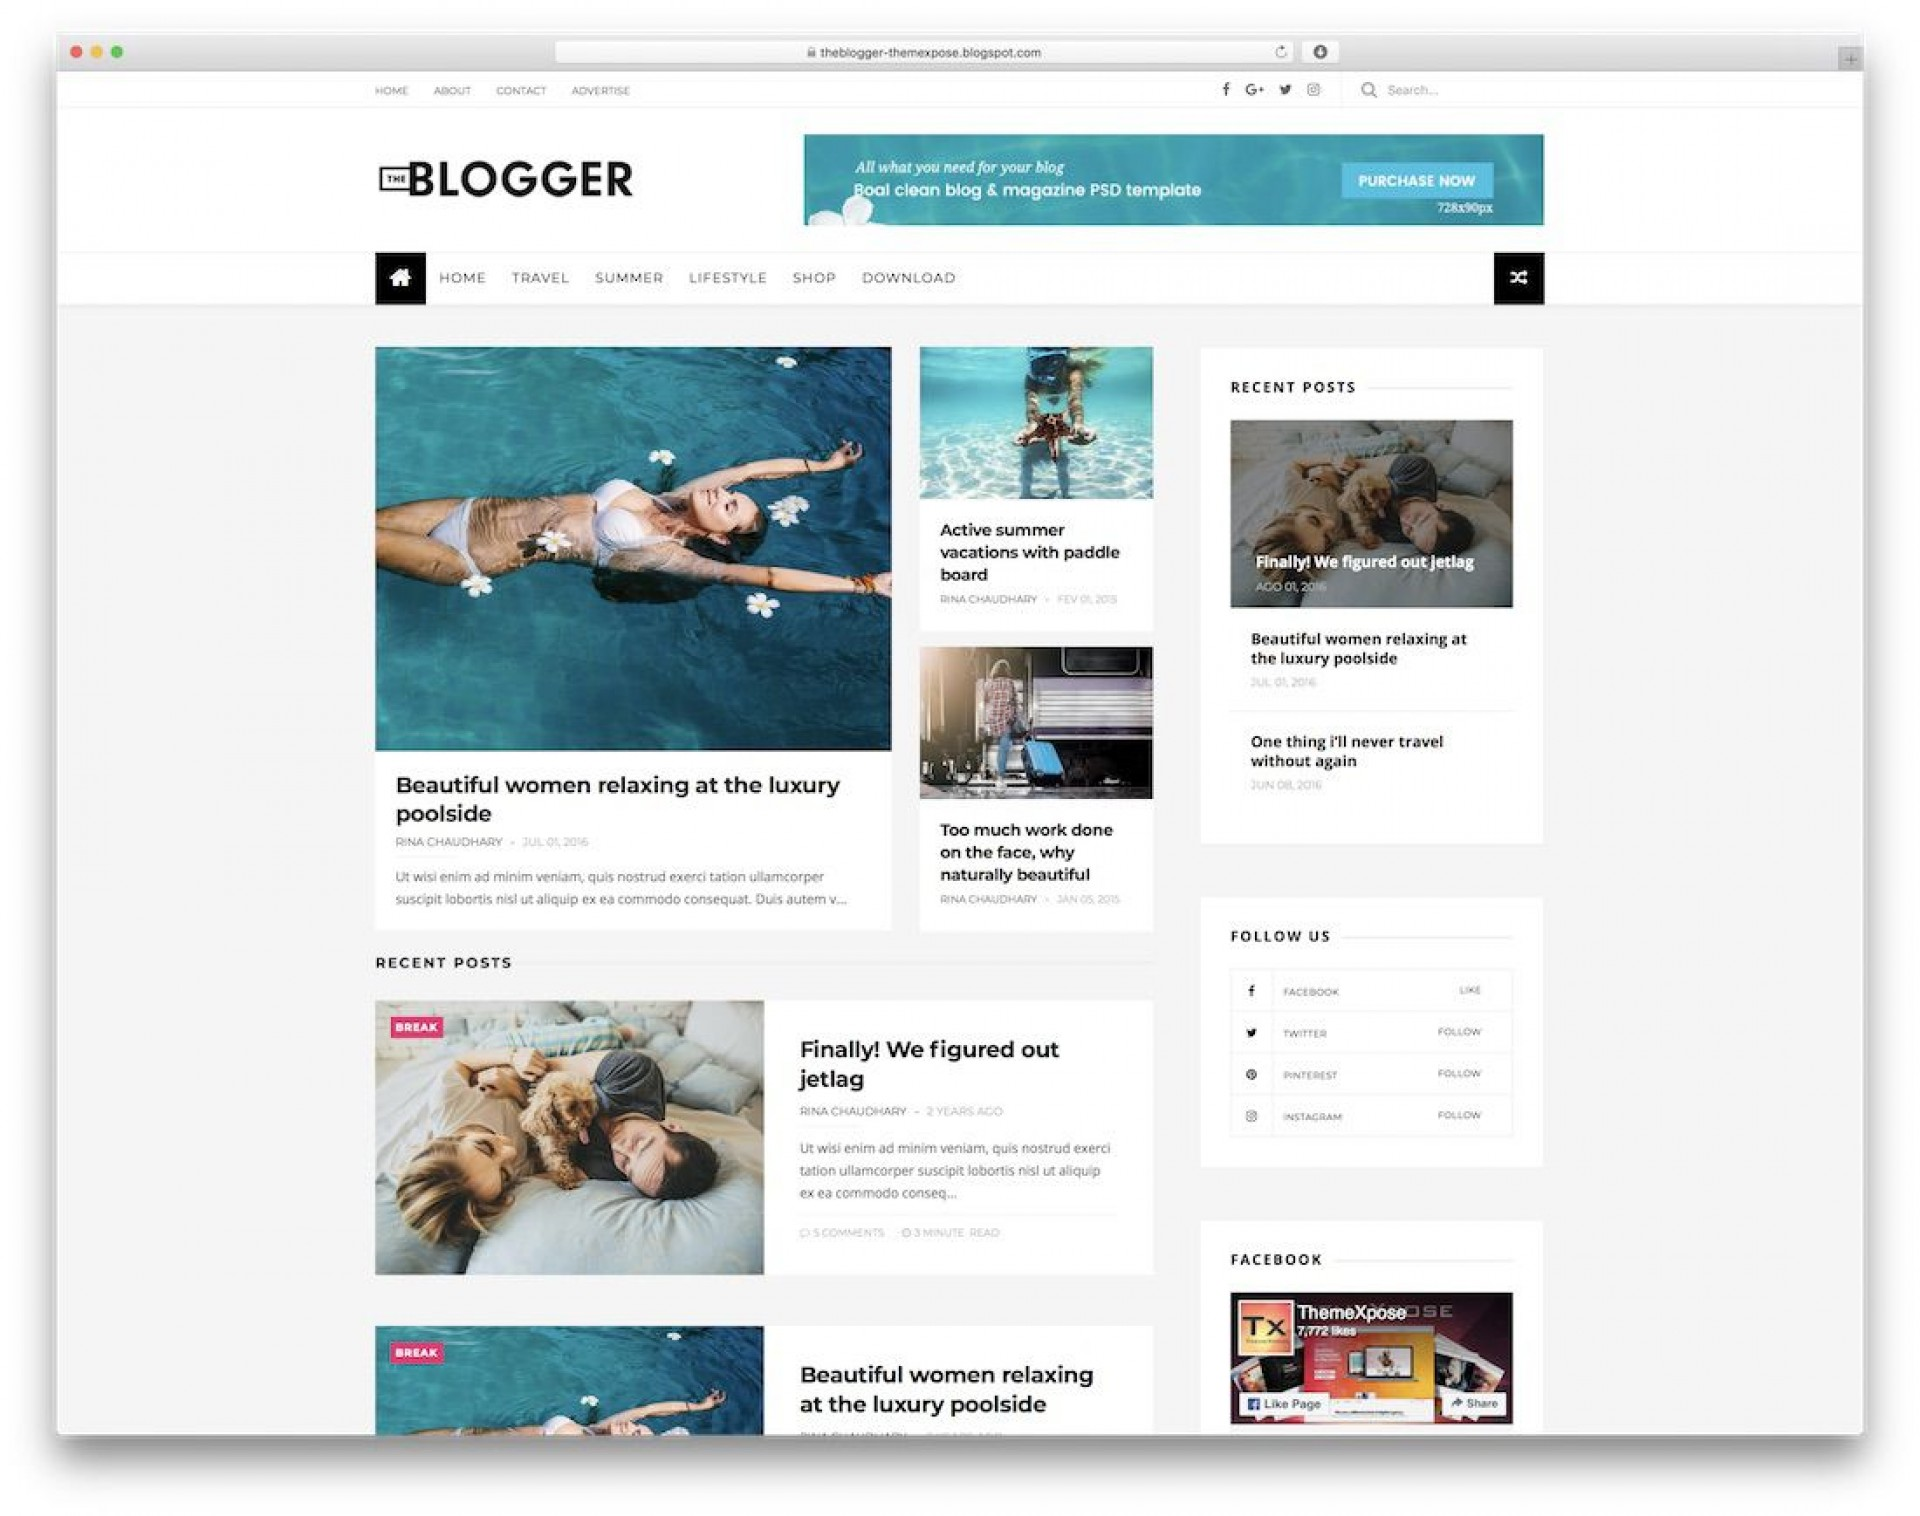 010 Striking Free Template For Blogger Picture  Blog Best Photographer Xml Download1920